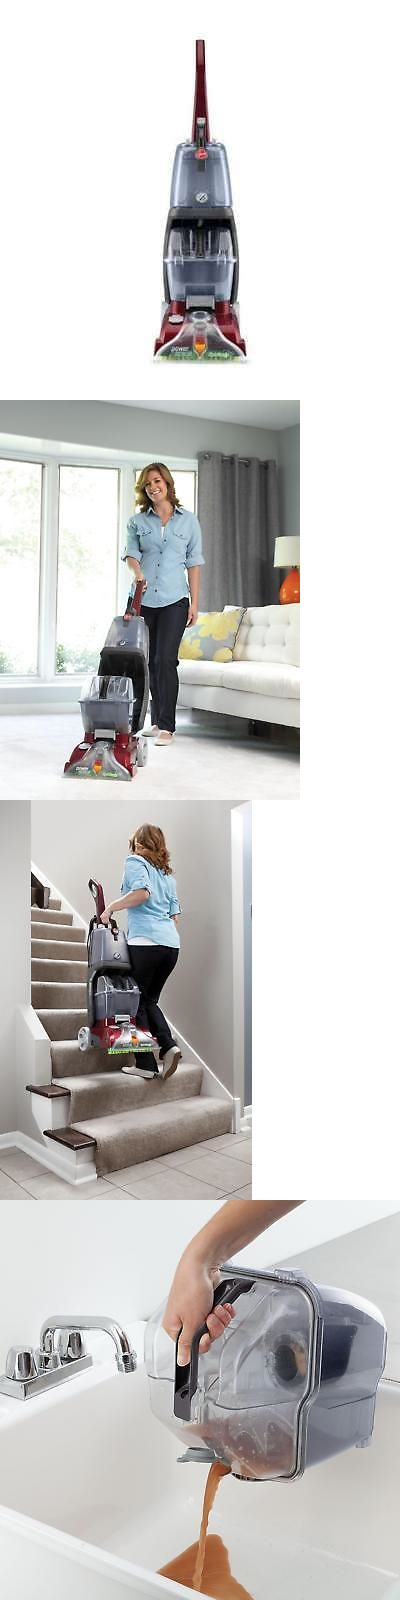 Carpet Steamers 79656 Hoover Power Scrub Deluxe Multifloor Carpet Cleaner Washer Fh50170 Buy It Now Only 89 Clean Washer Carpet Steamers